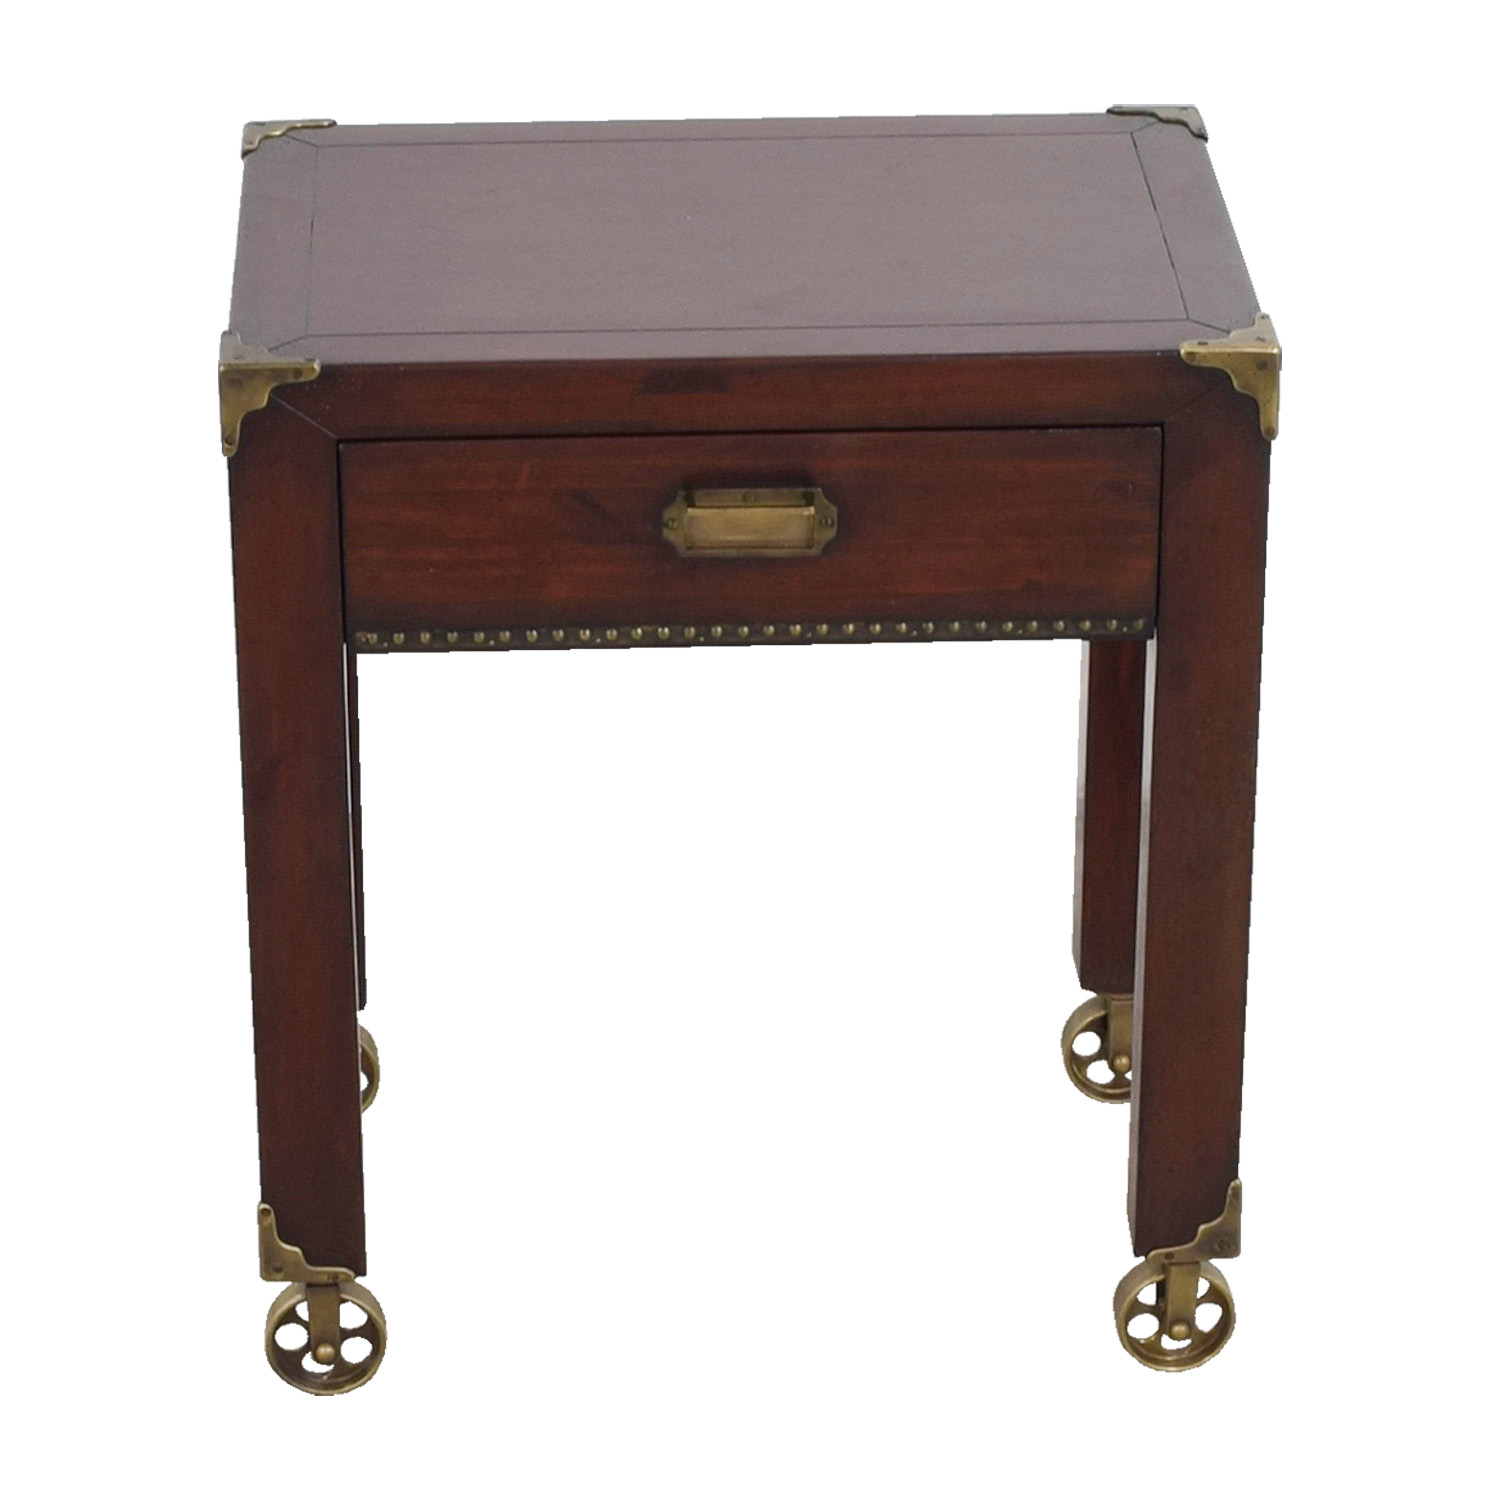 Grange Grange British Colonial Single Drawer End Table on Castors